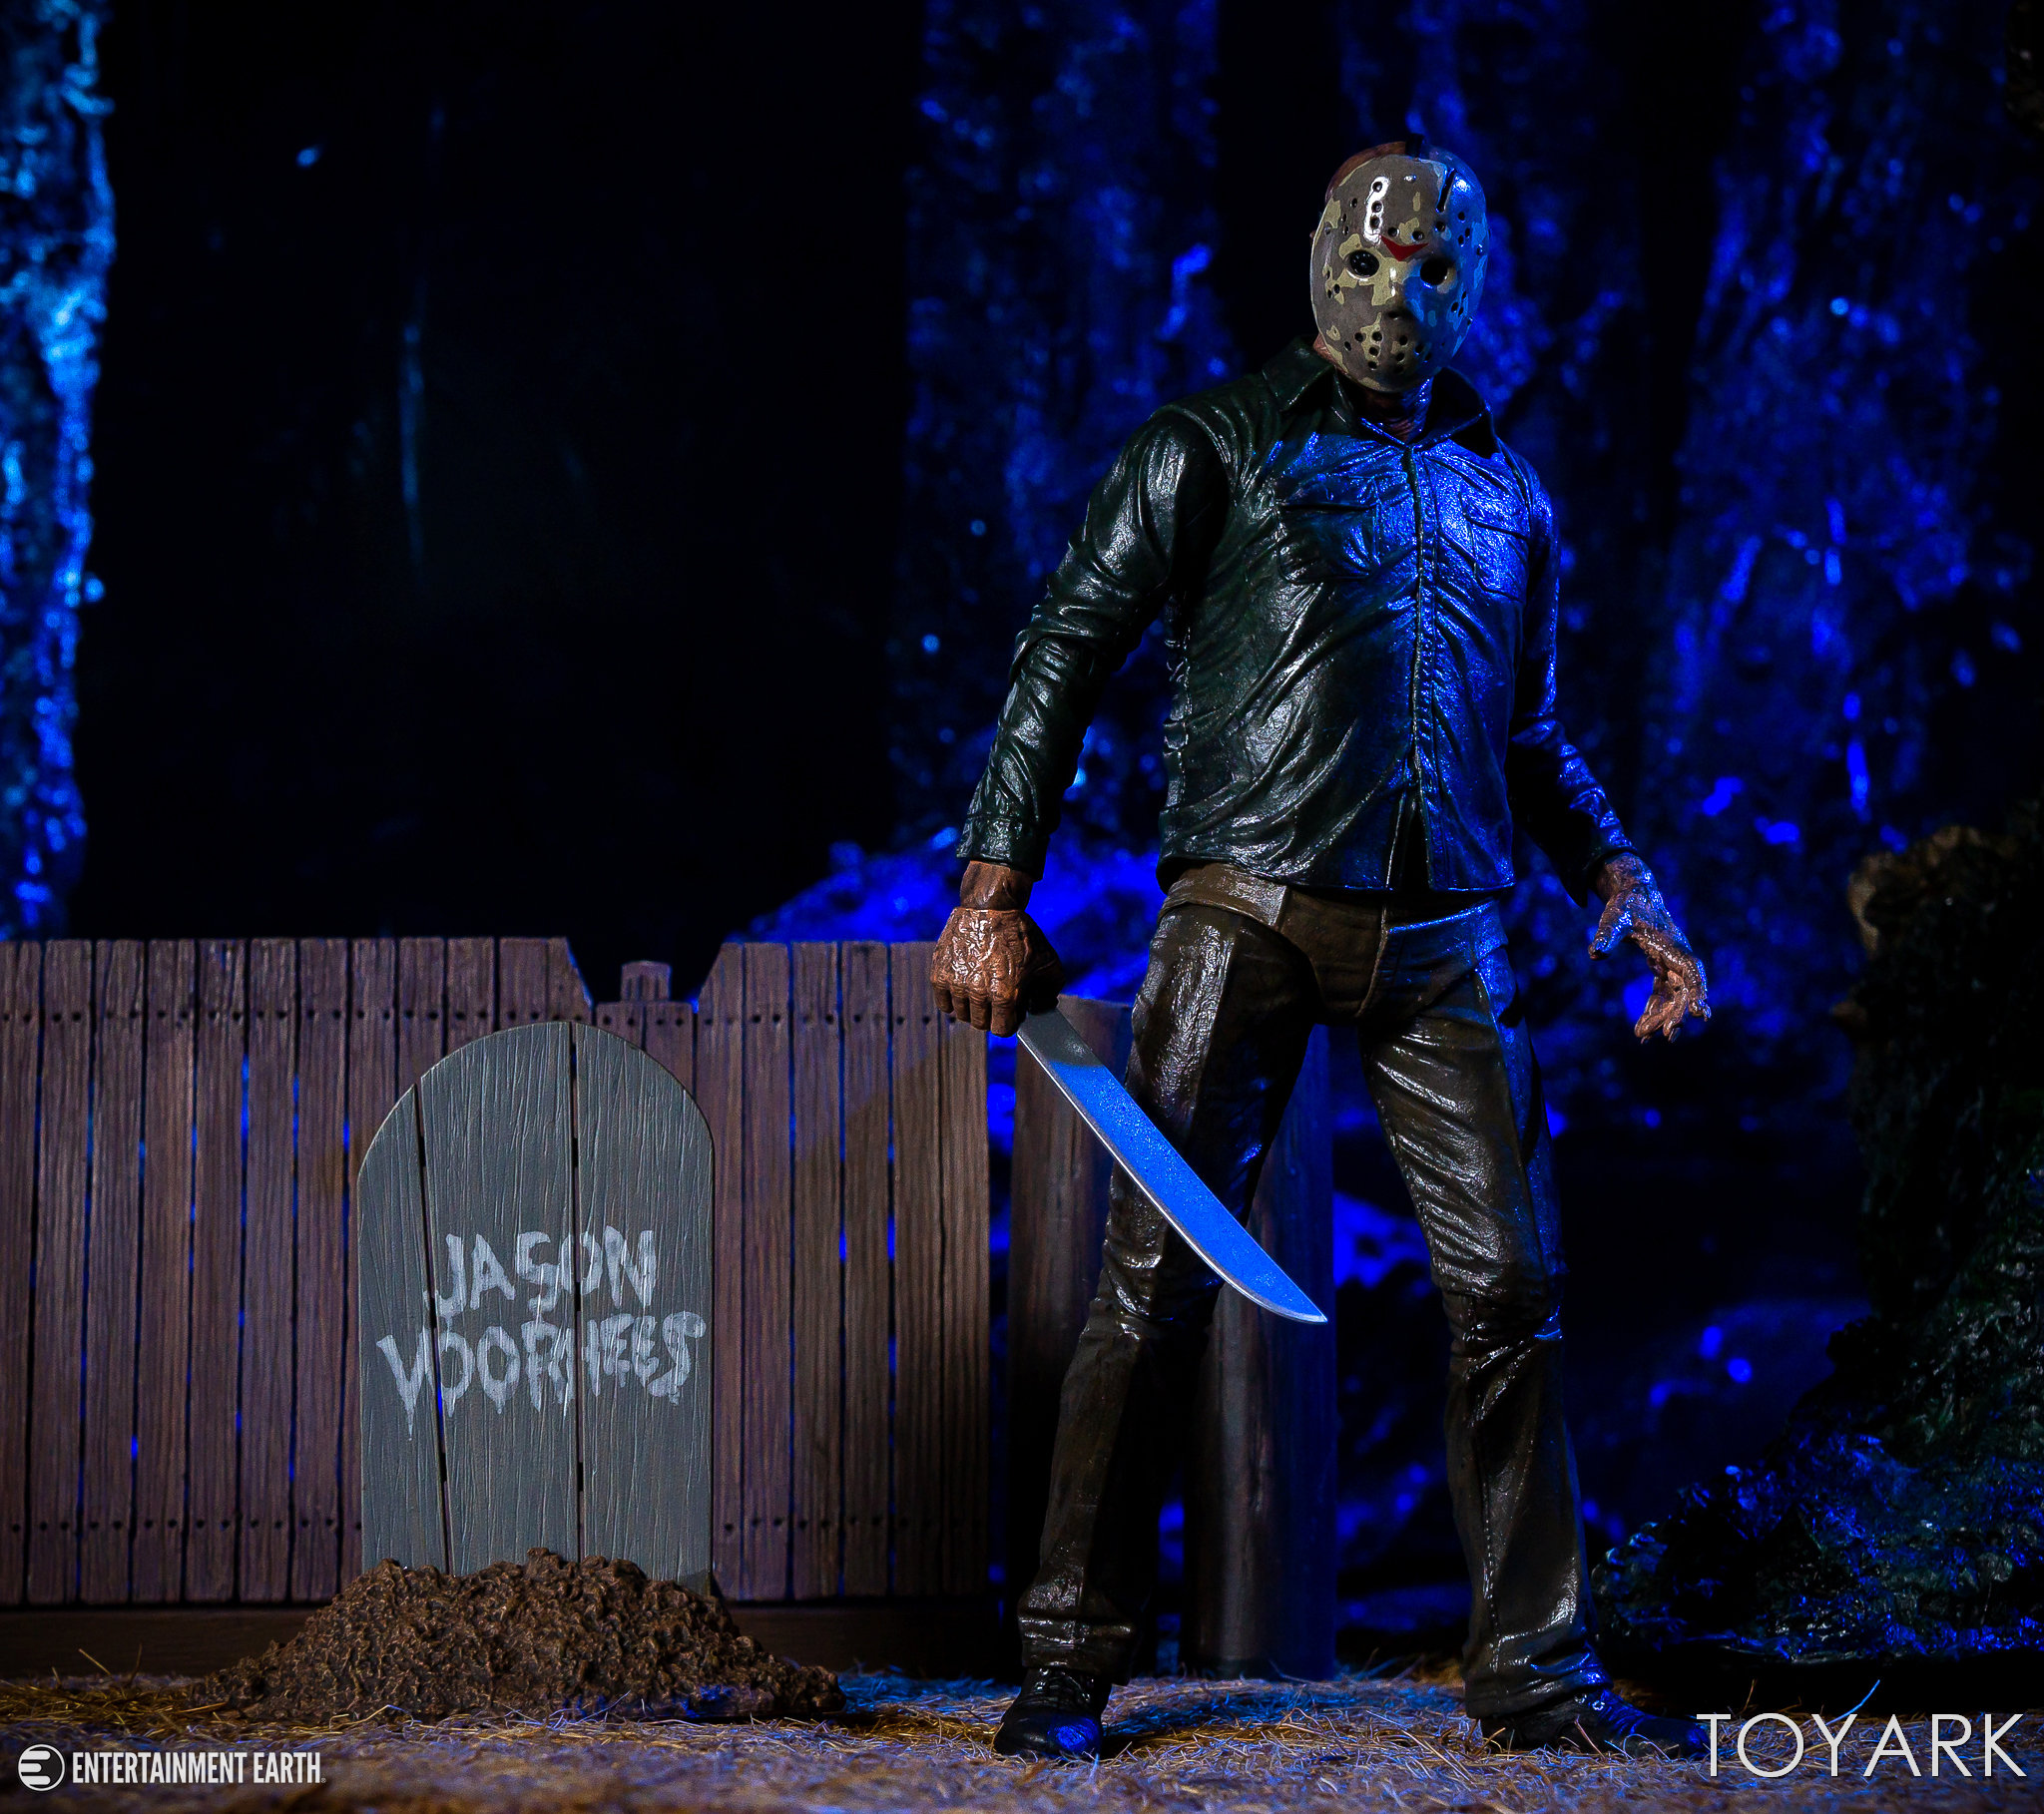 https://news.toyark.com/wp-content/uploads/sites/4/2018/10/NECA-Ultimate-Dream-Jason-020.jpg